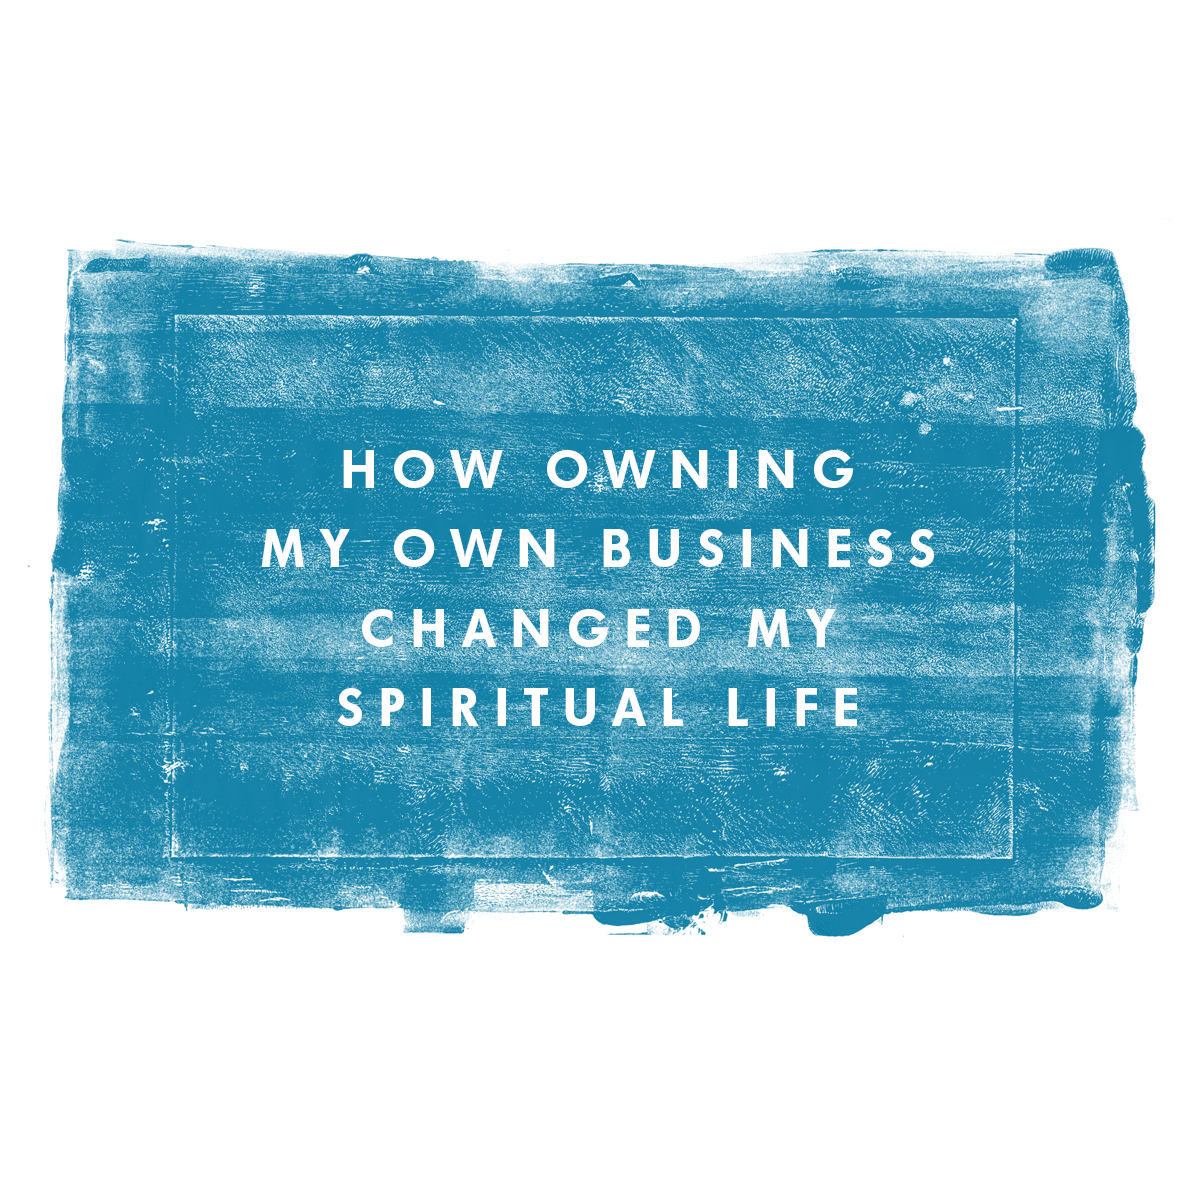 How owning my own business changed my spiritual life.